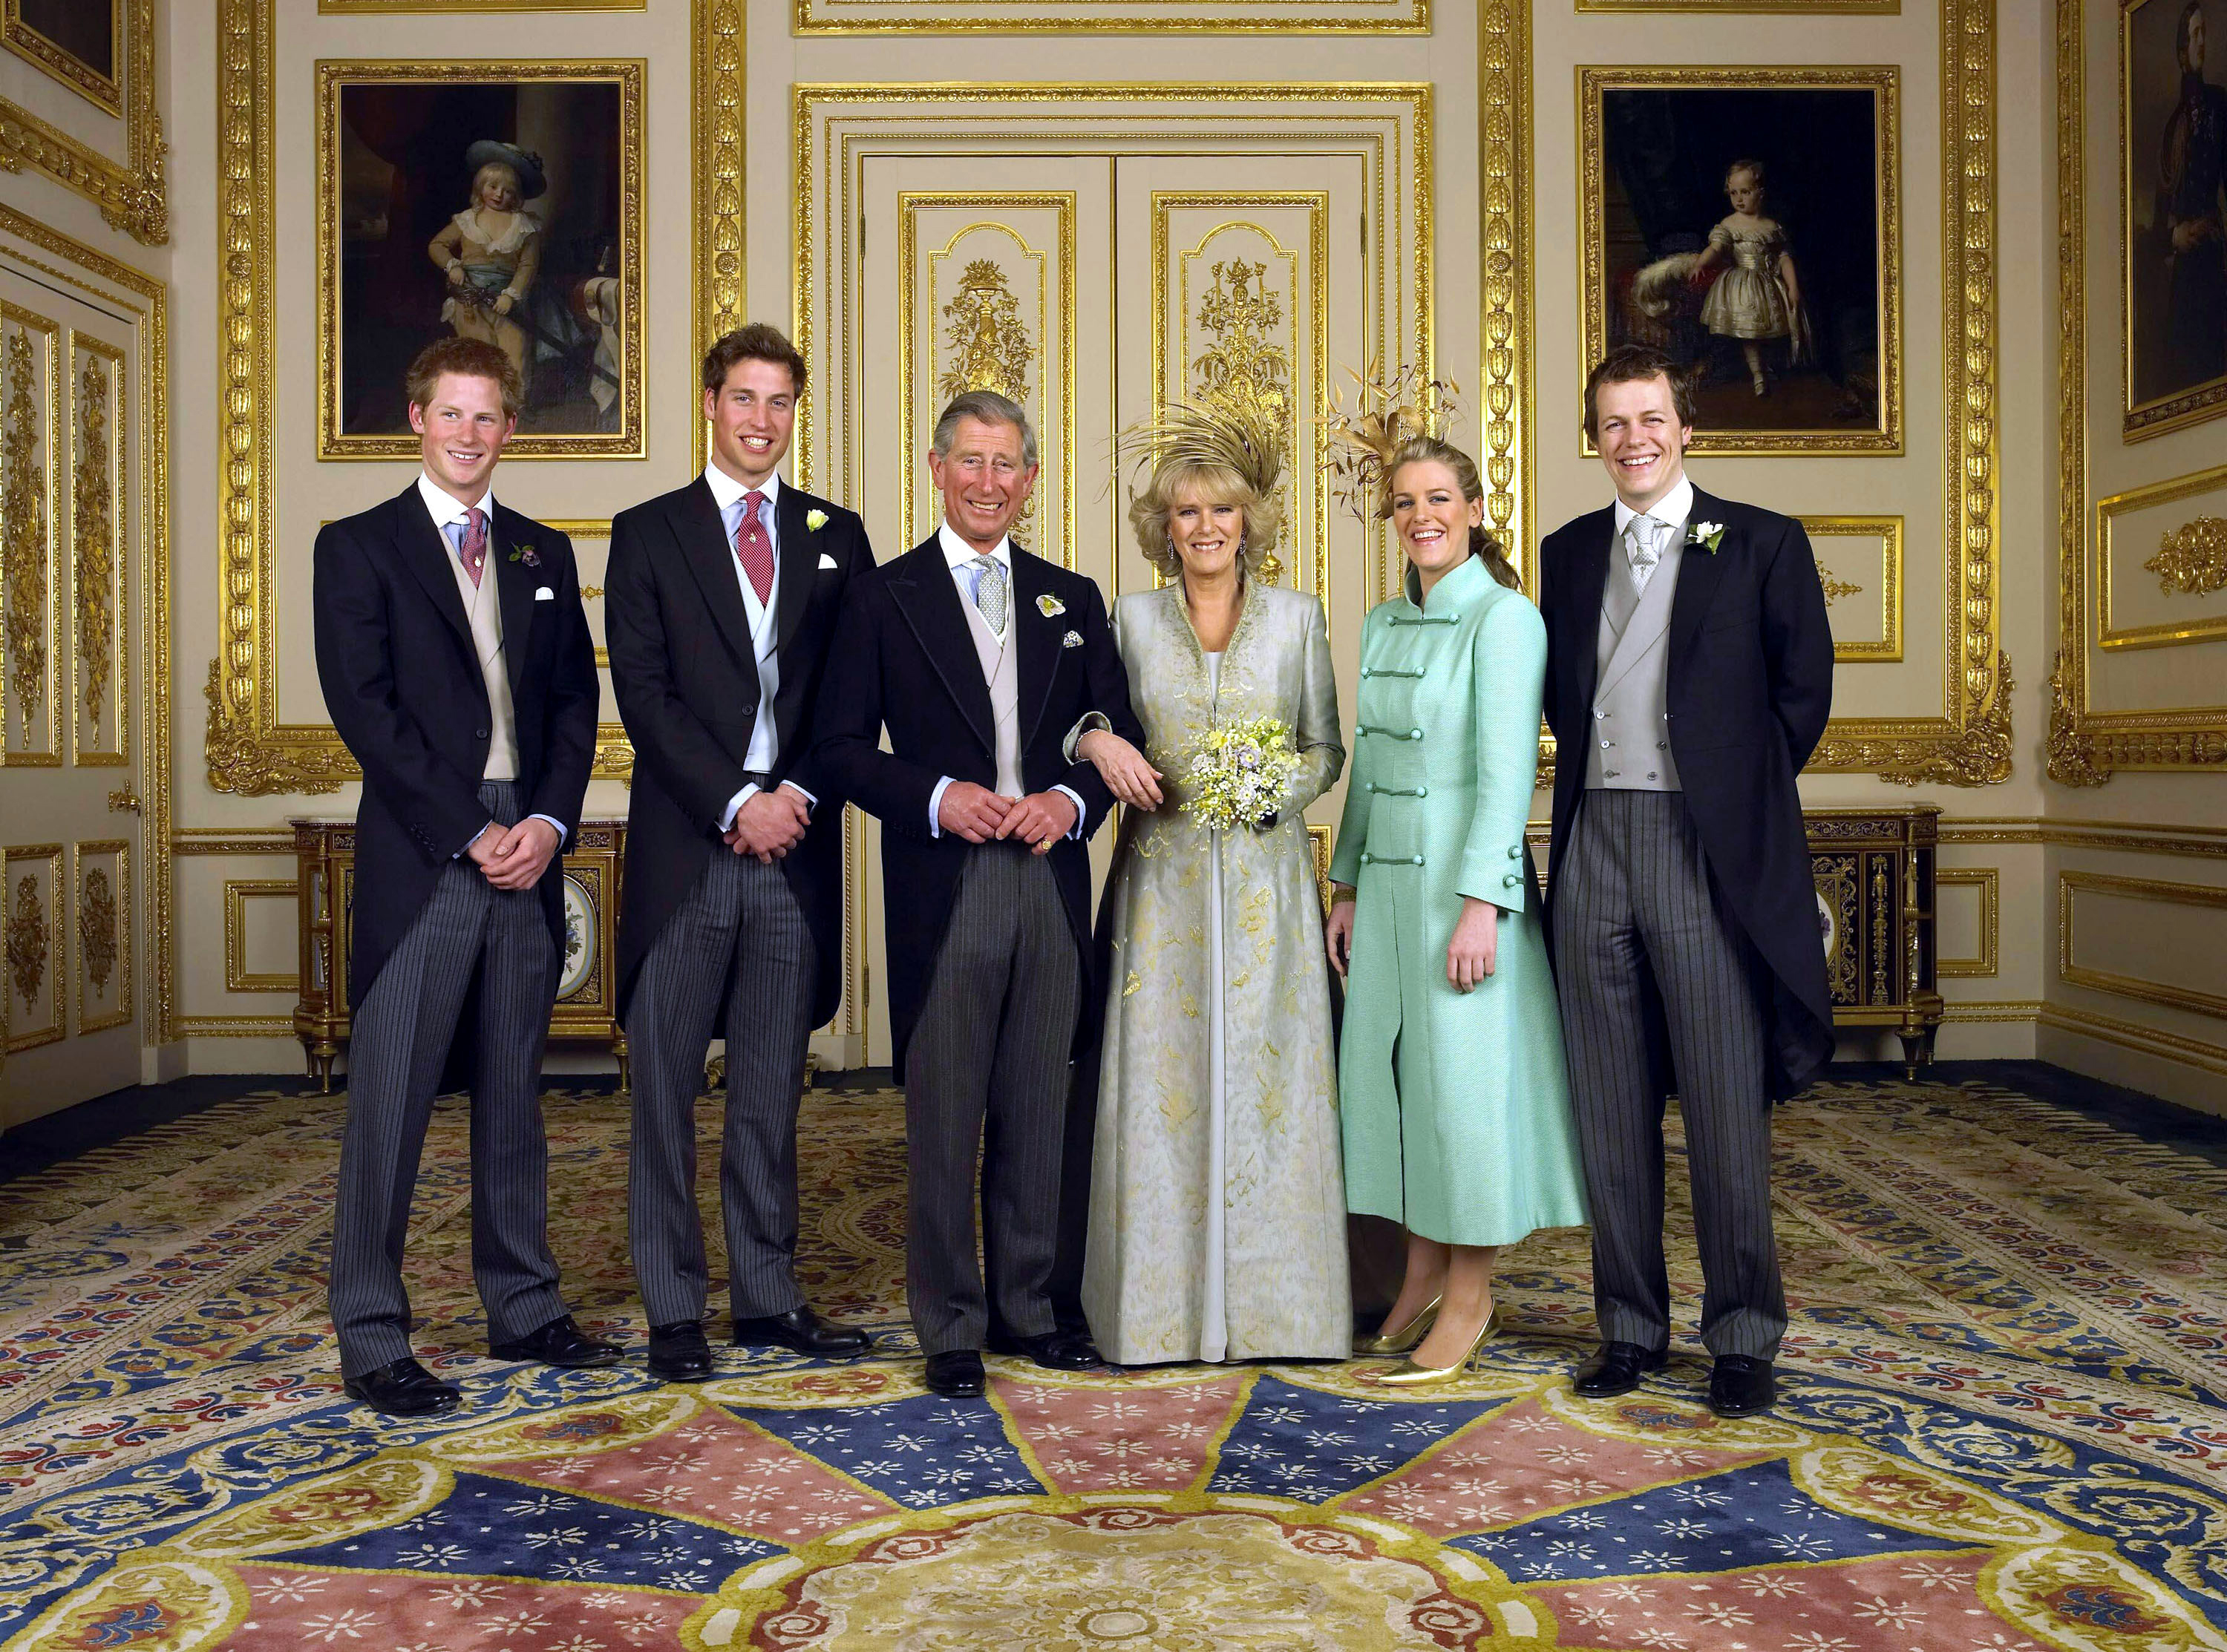 Charles and Camilla wedding